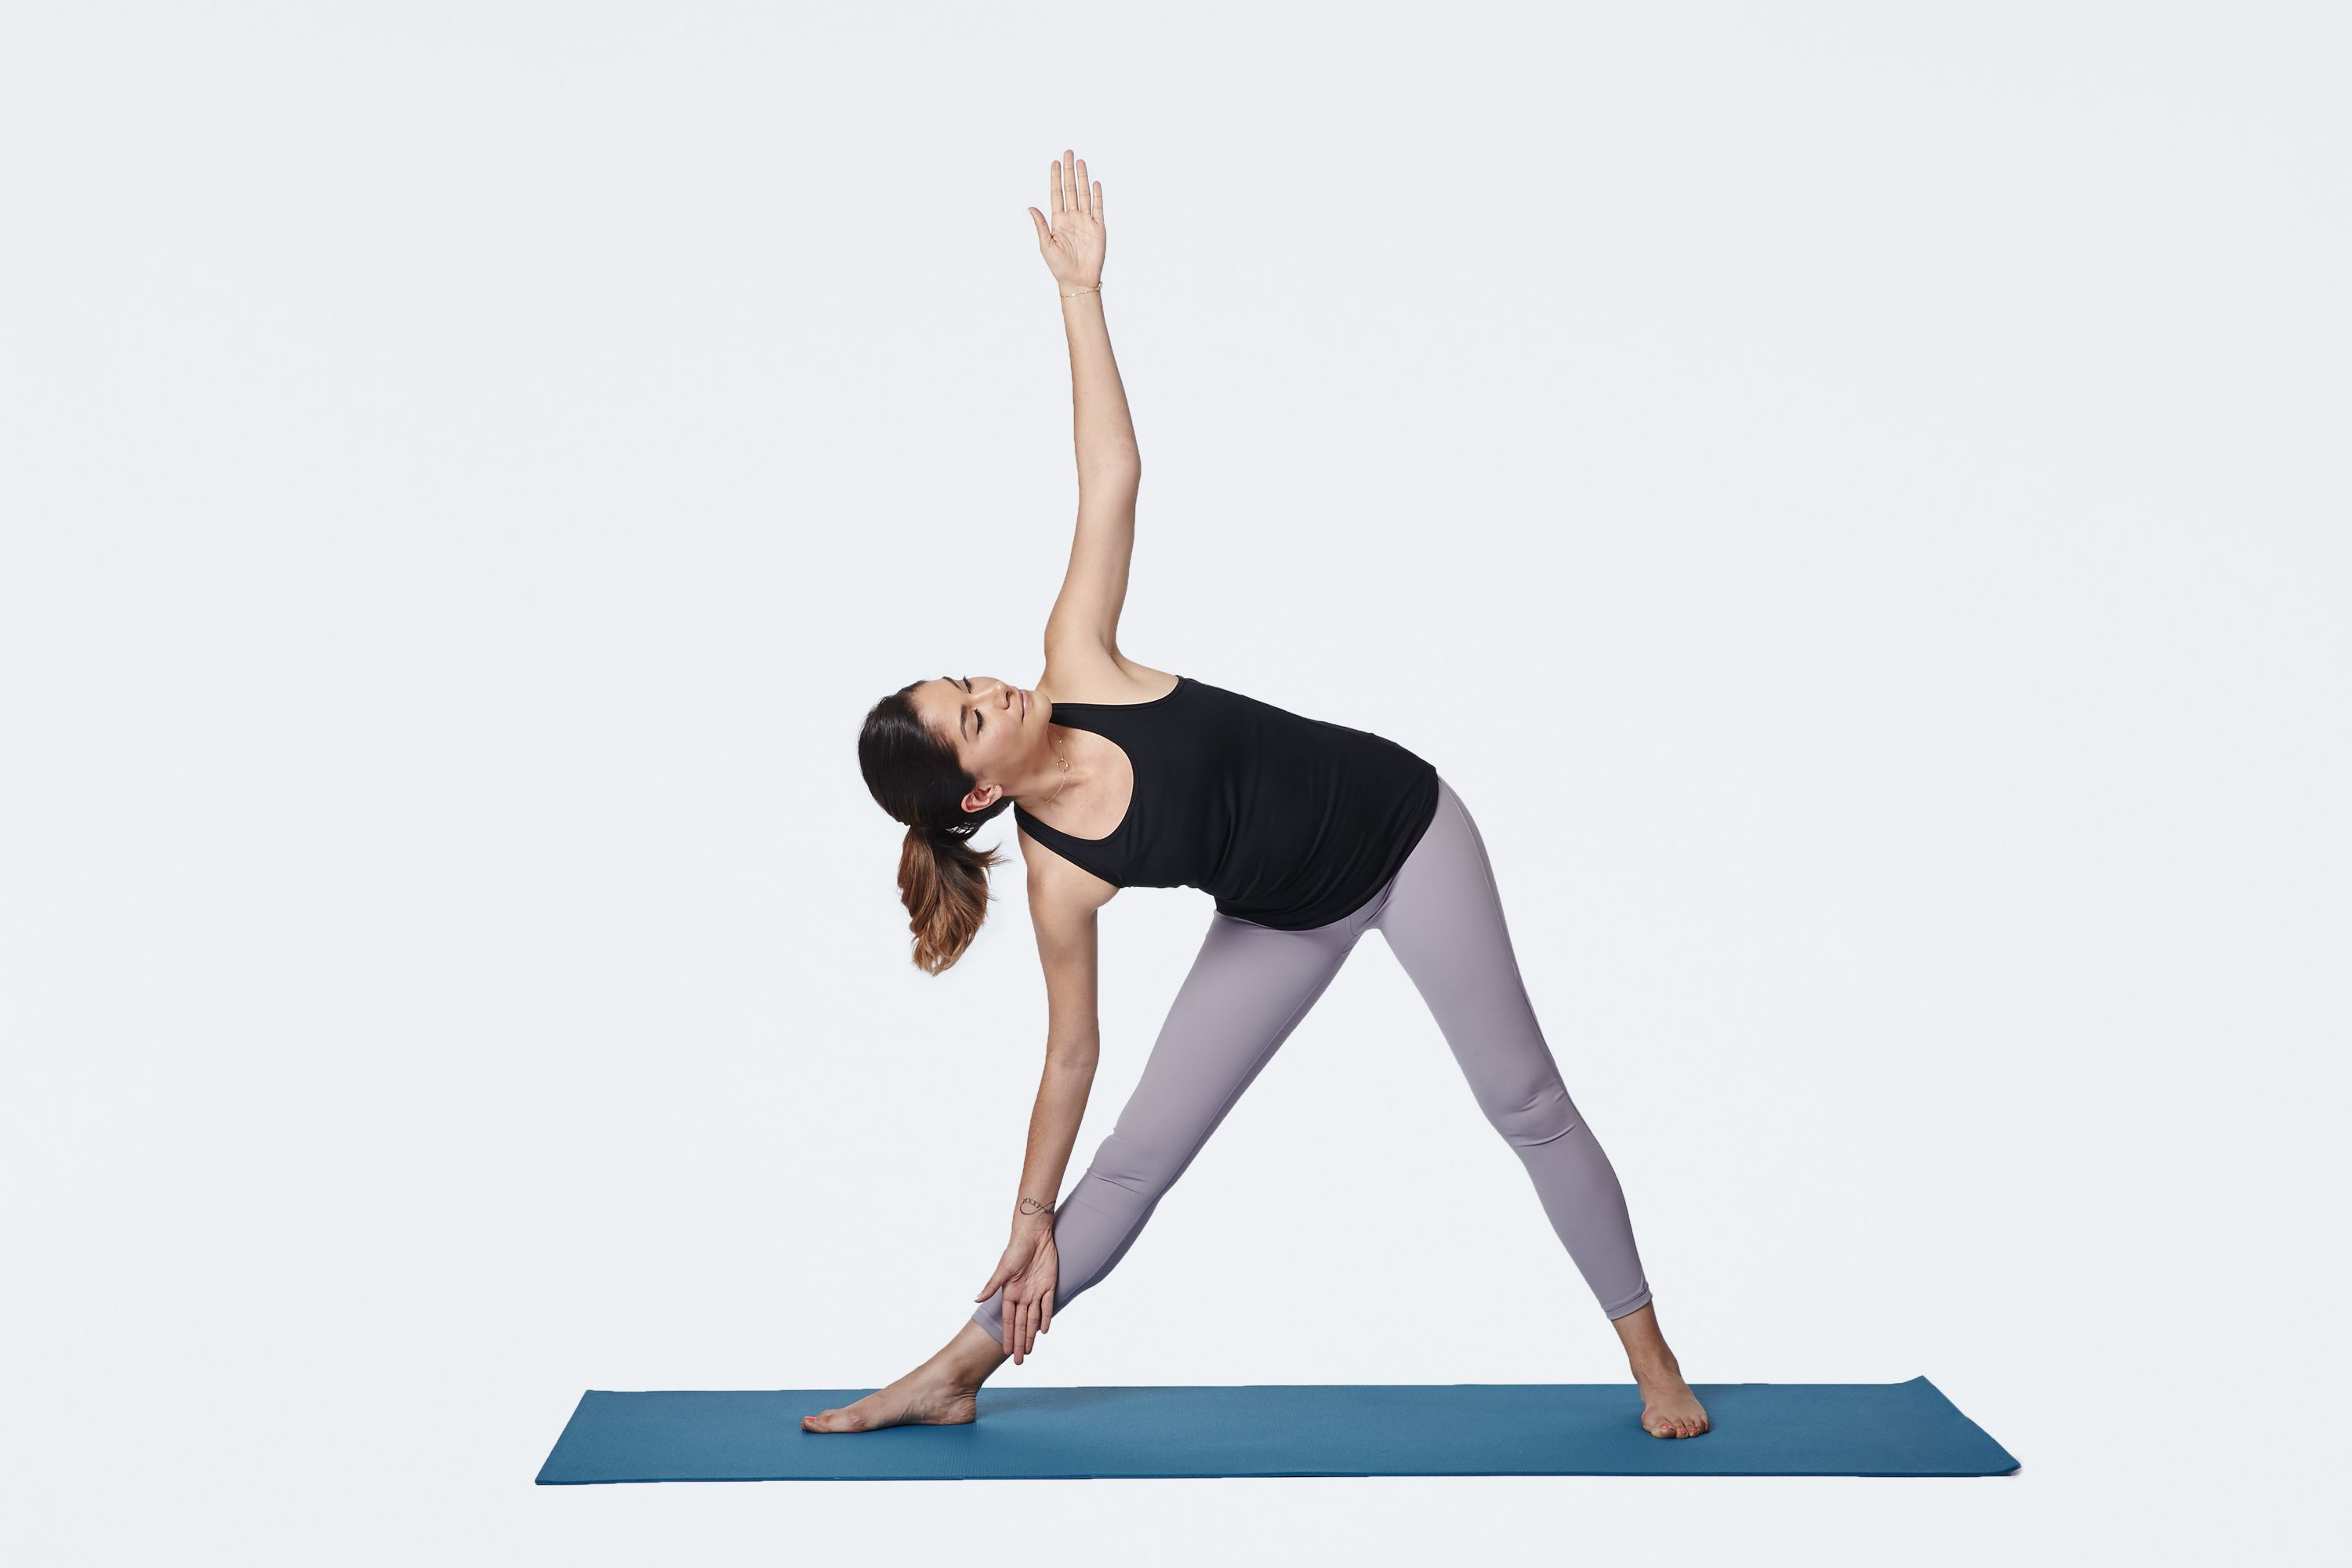 How to Do Triangle Pose (Utthita Trikonasana)